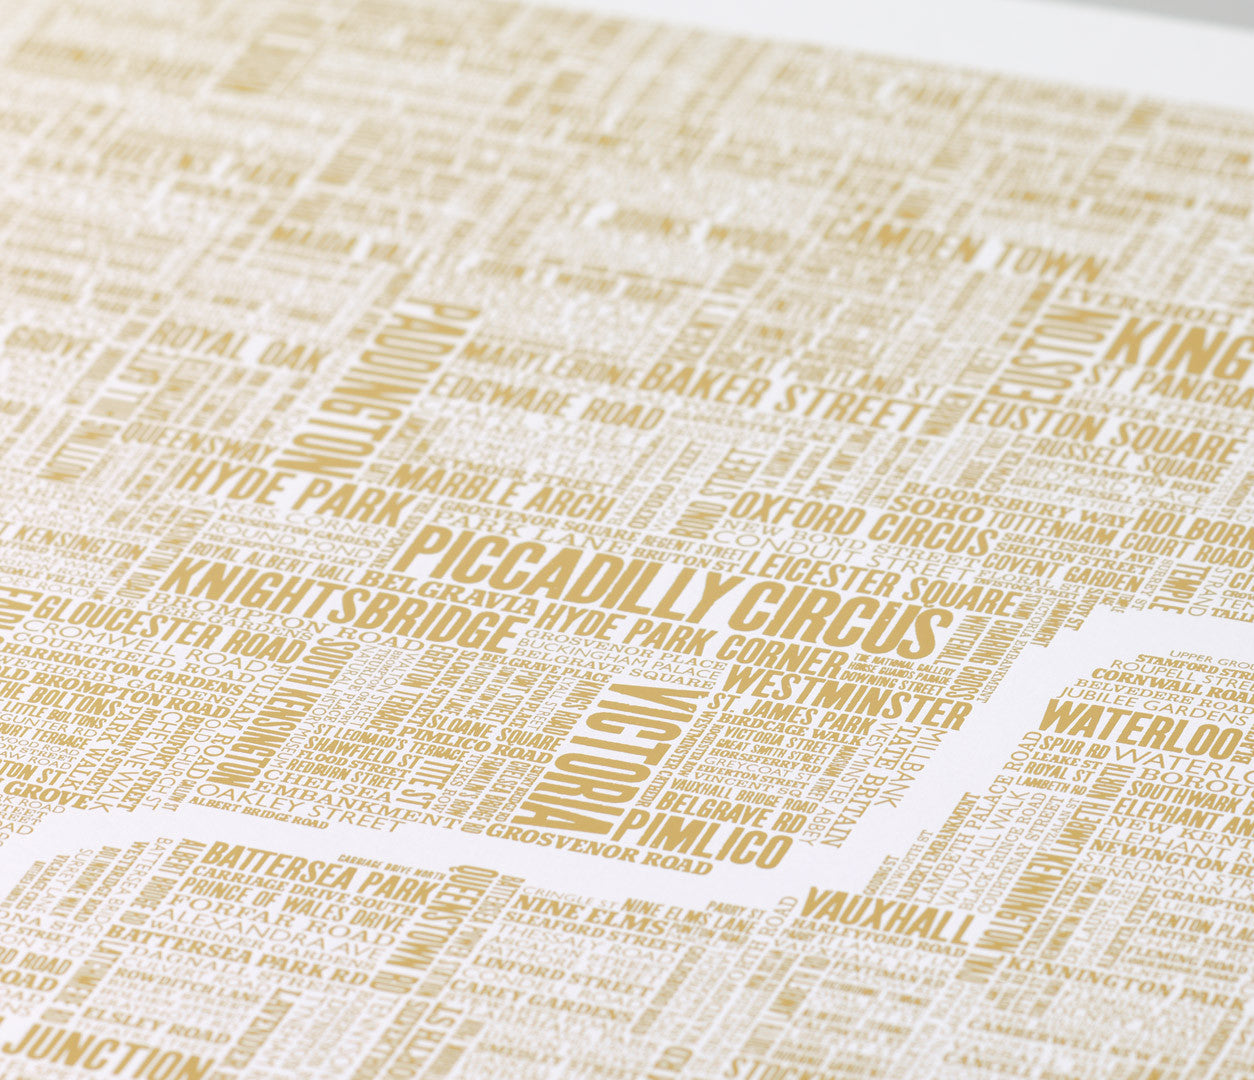 Close up of London Type Map Foil Blocked Limited Edition Print in Gold